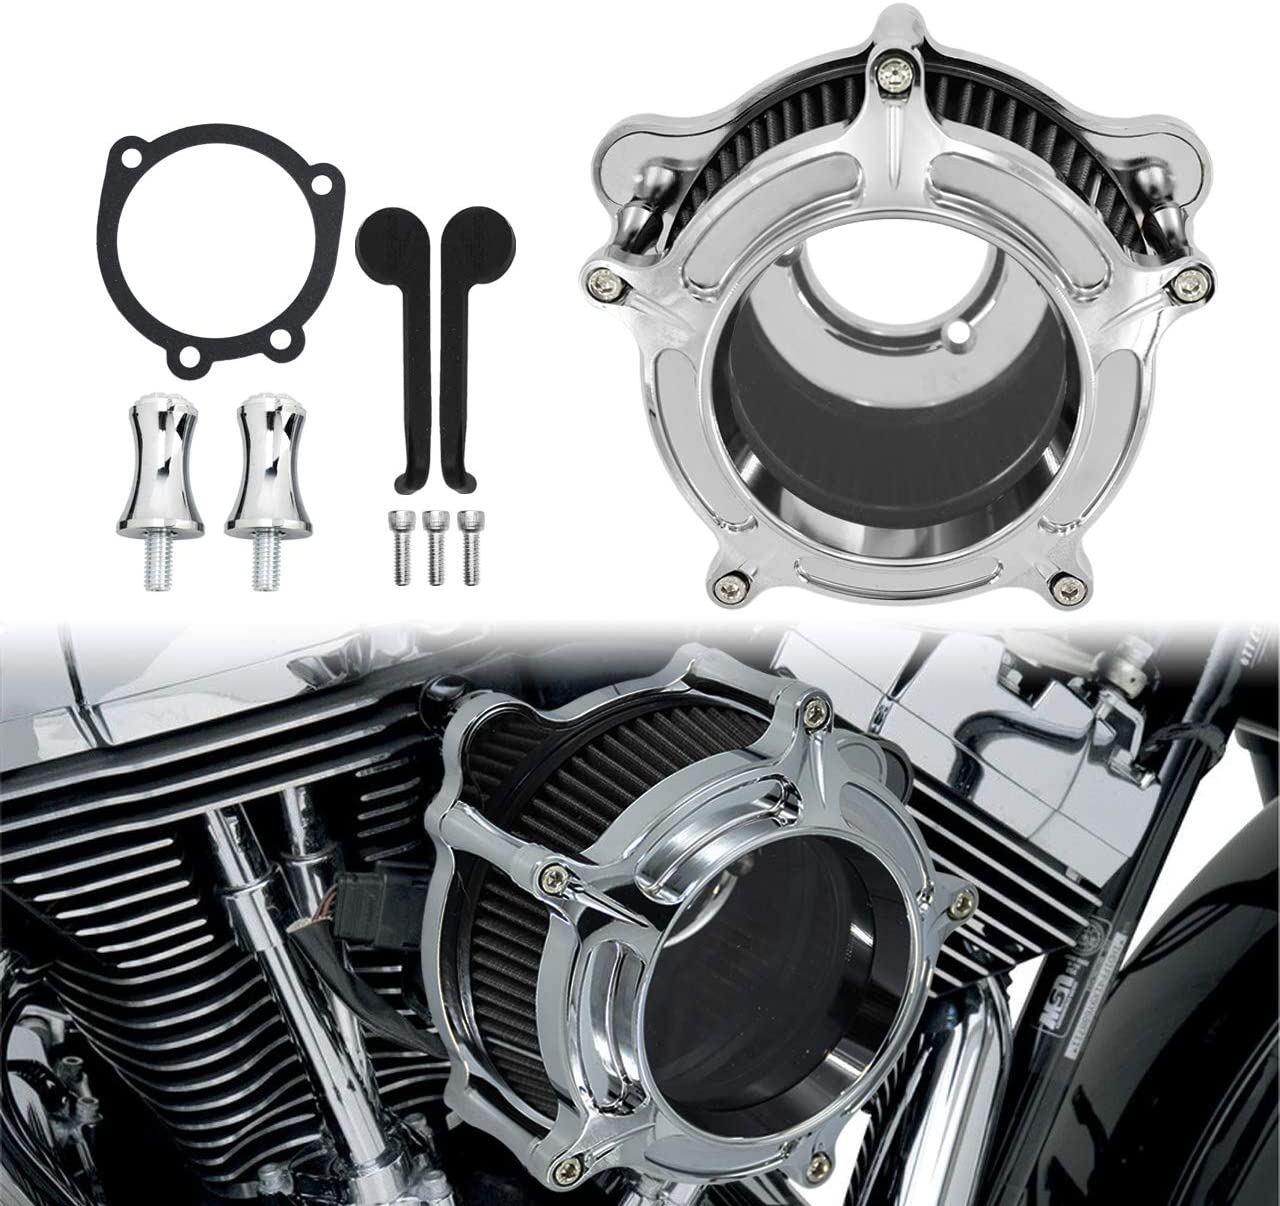 YHMTIVTU Air Cleaner Filter Kits Fit for 2021new shipping New color free 2000-2017 Harley S Dyna